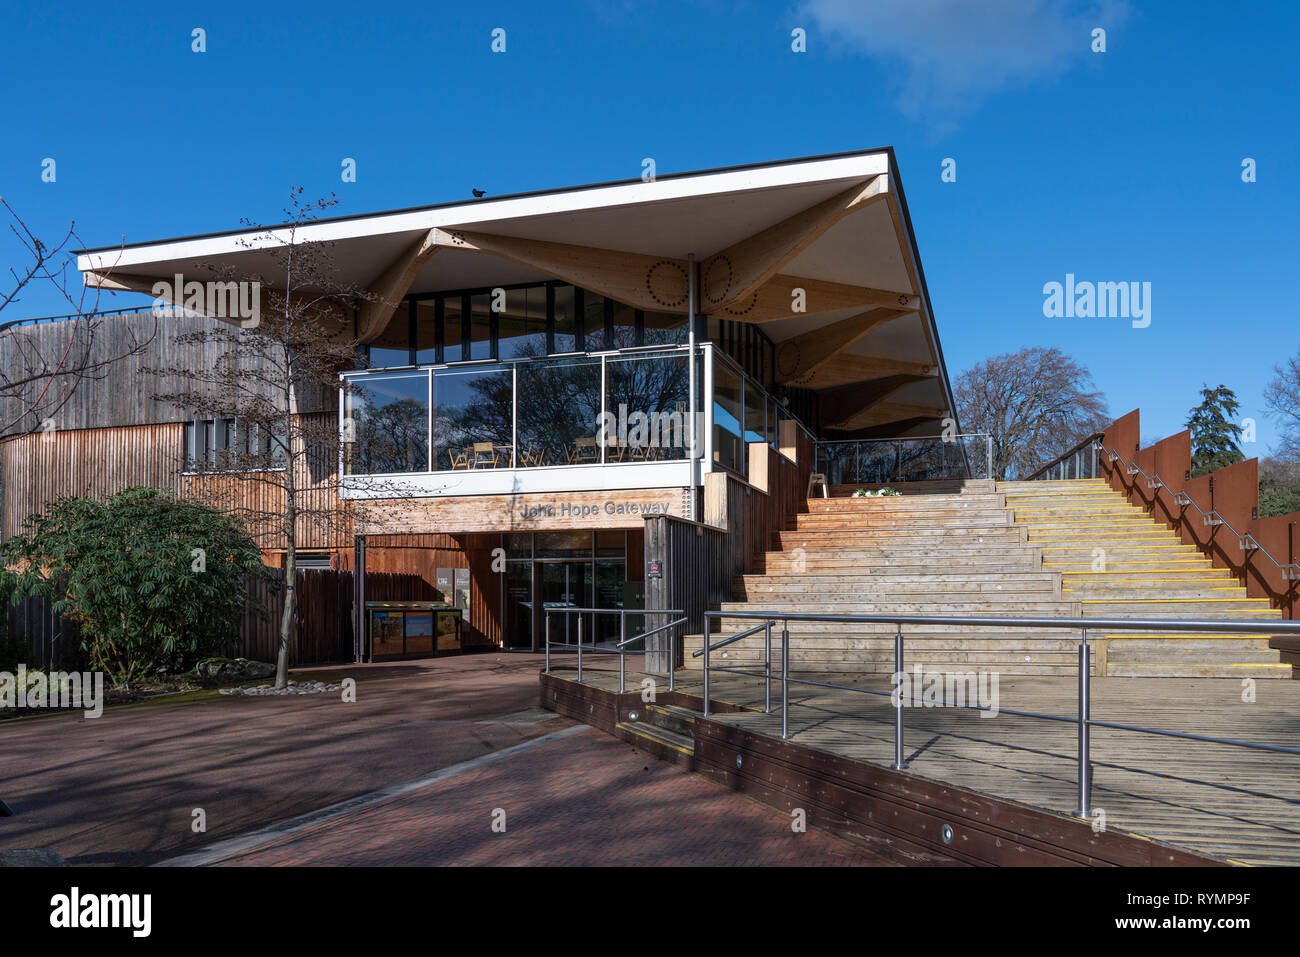 John Hope Gateway visitor centre at Royal Botanic Garden Edinburgh, Scotland, UK - Stock Image